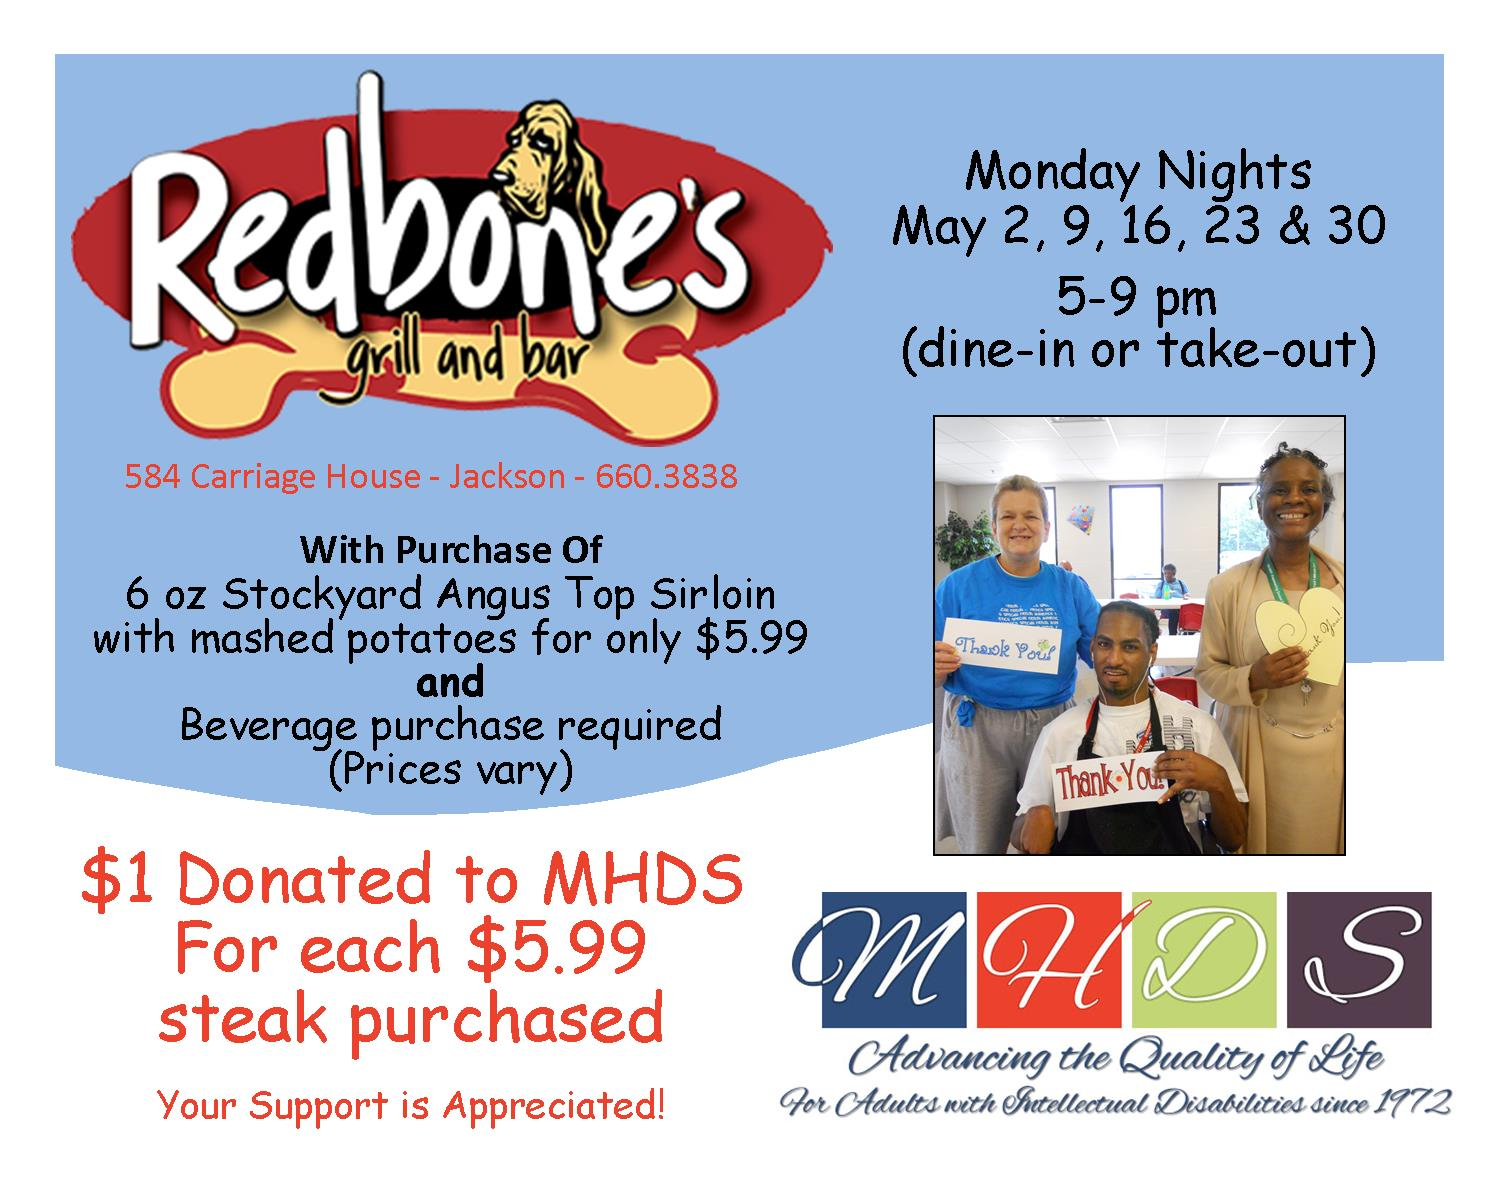 2016-4-25 - May - Redbones - MHDS Monday Steak Night Promotion